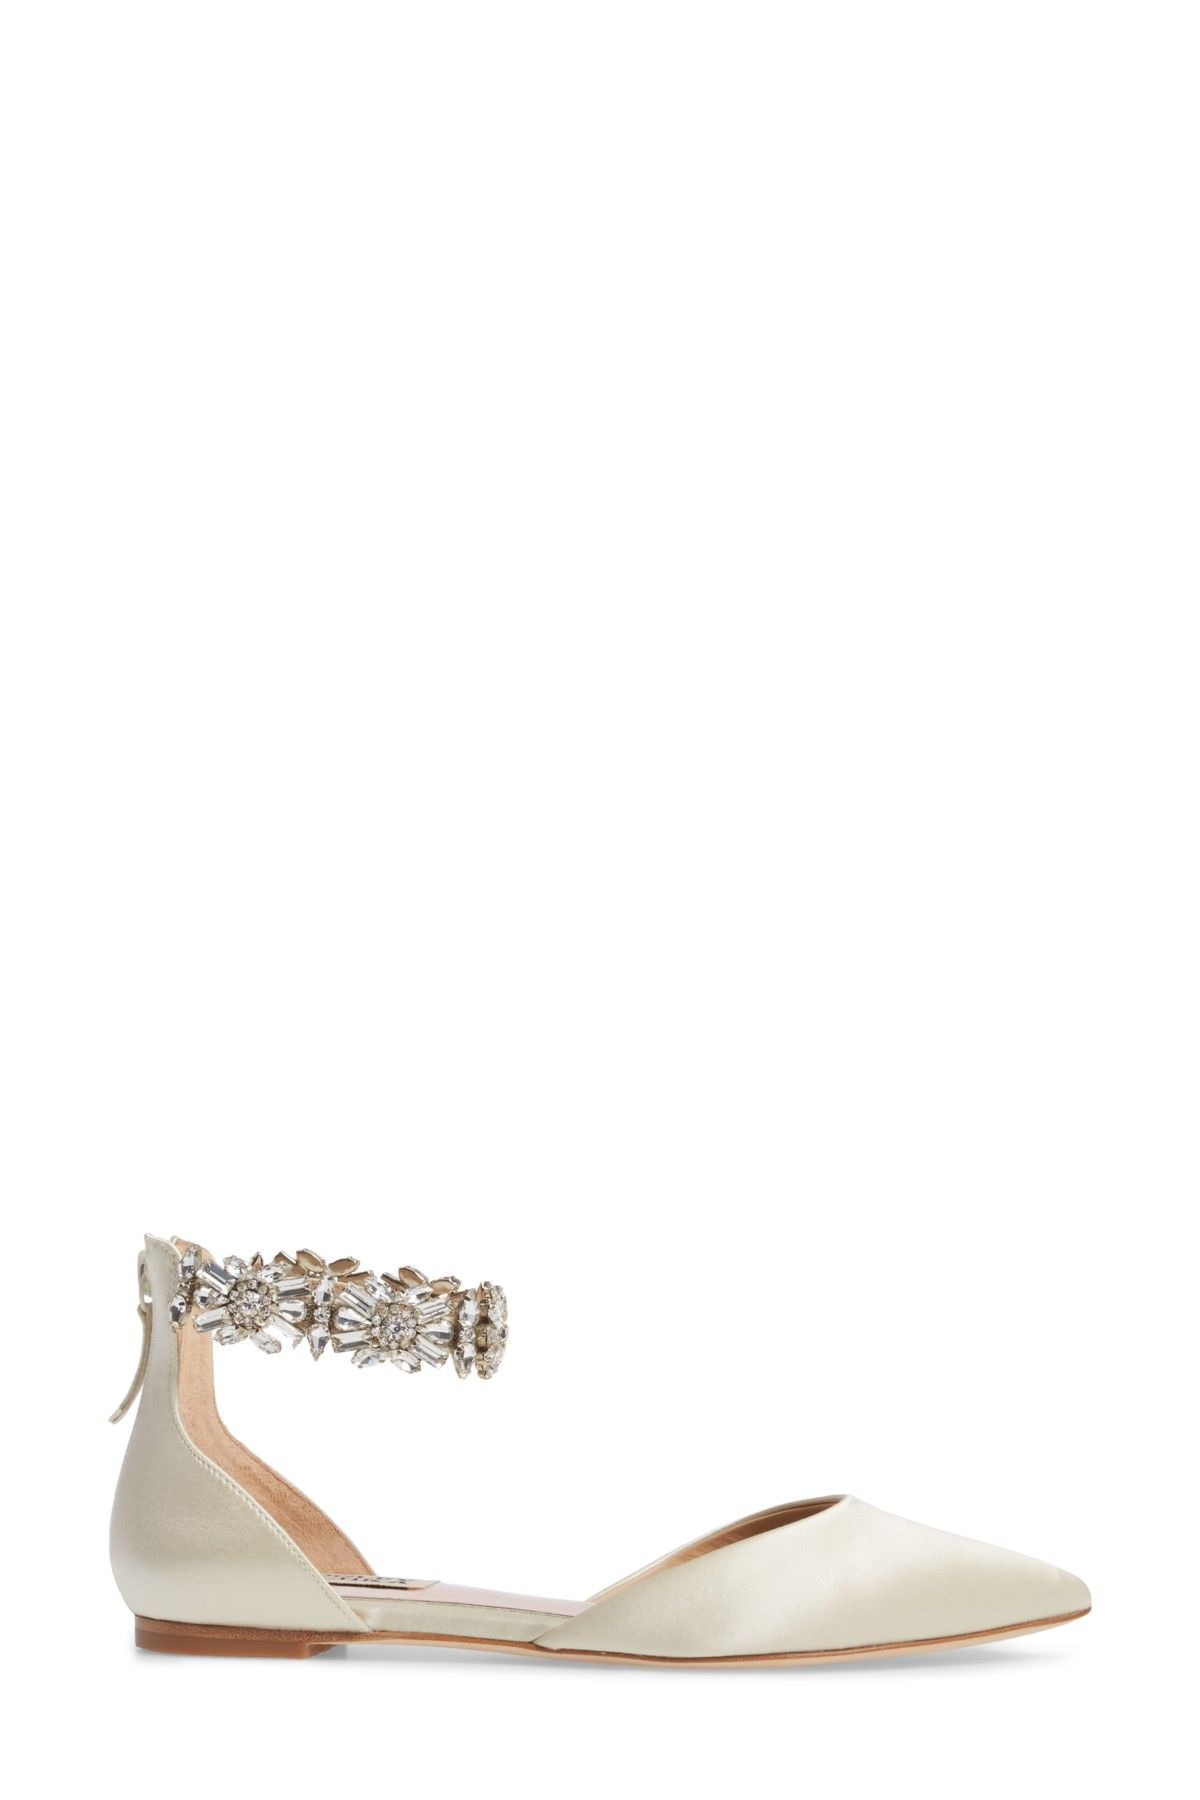 7922a2f270b6 Image of Badgley Mischka Morgen Ankle Strap Flat